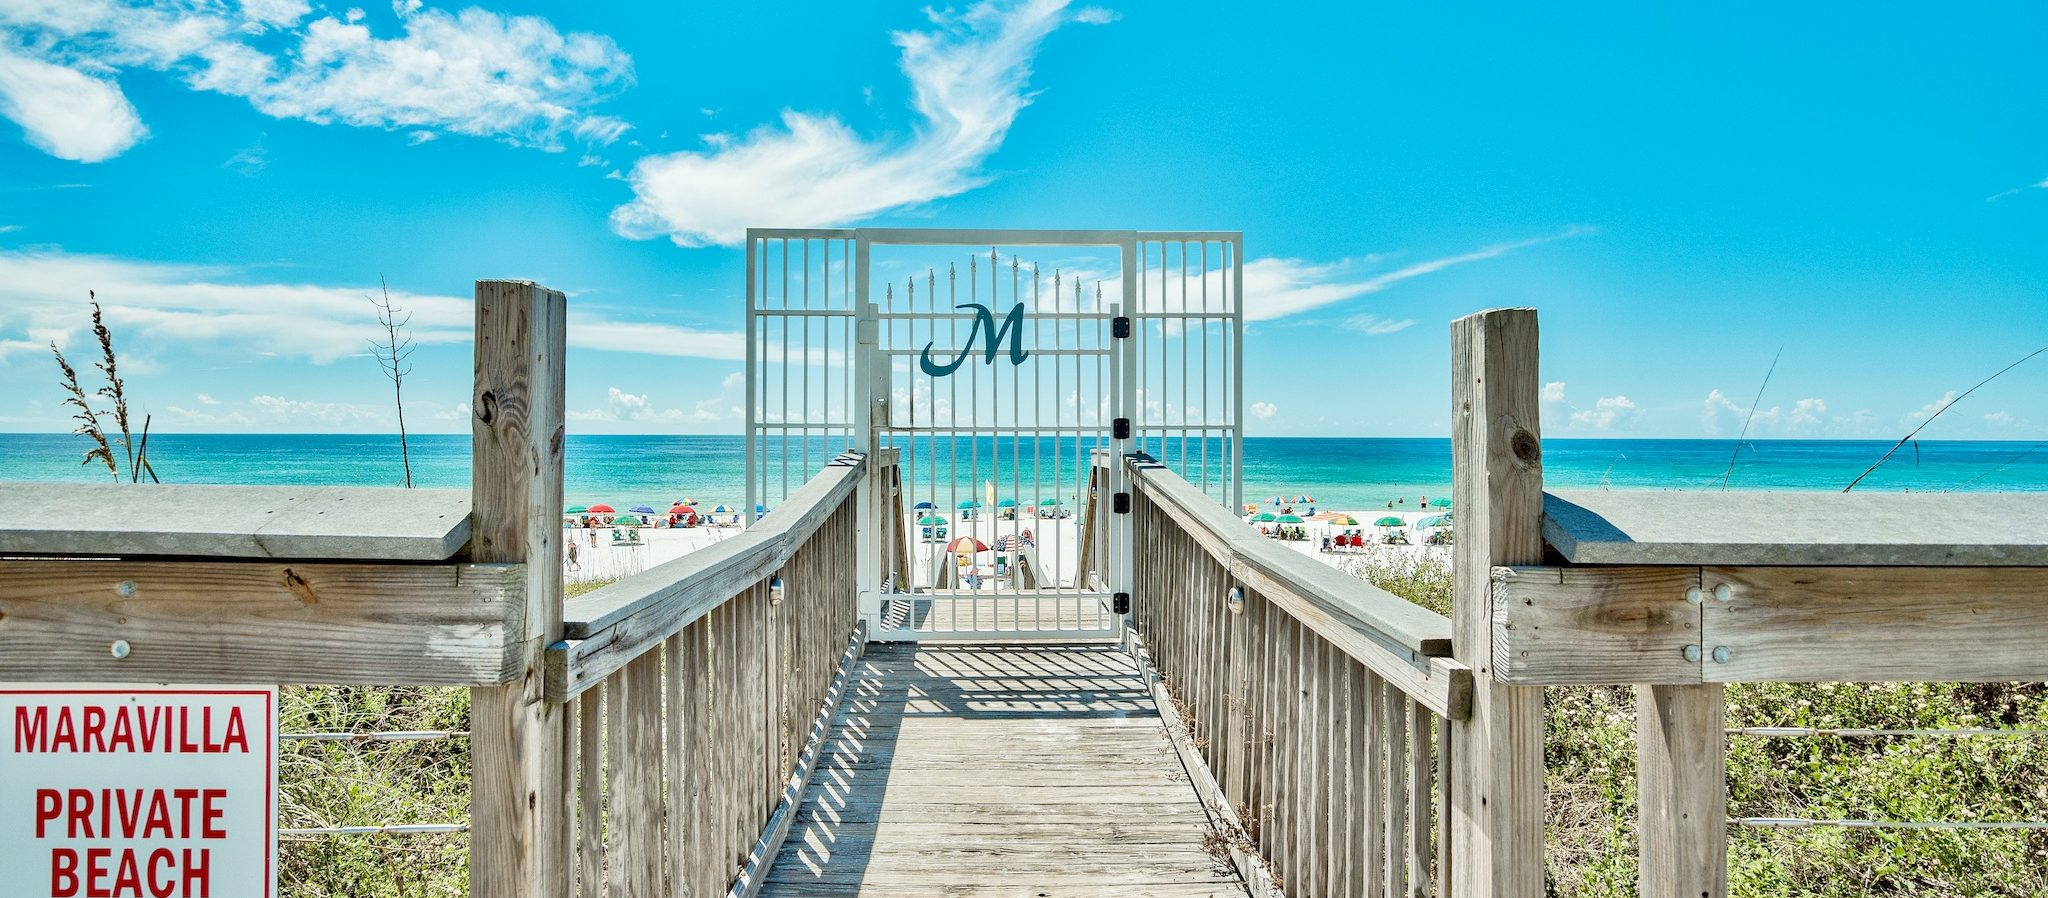 Find accommodations on Destin beach that take dogs and pets.